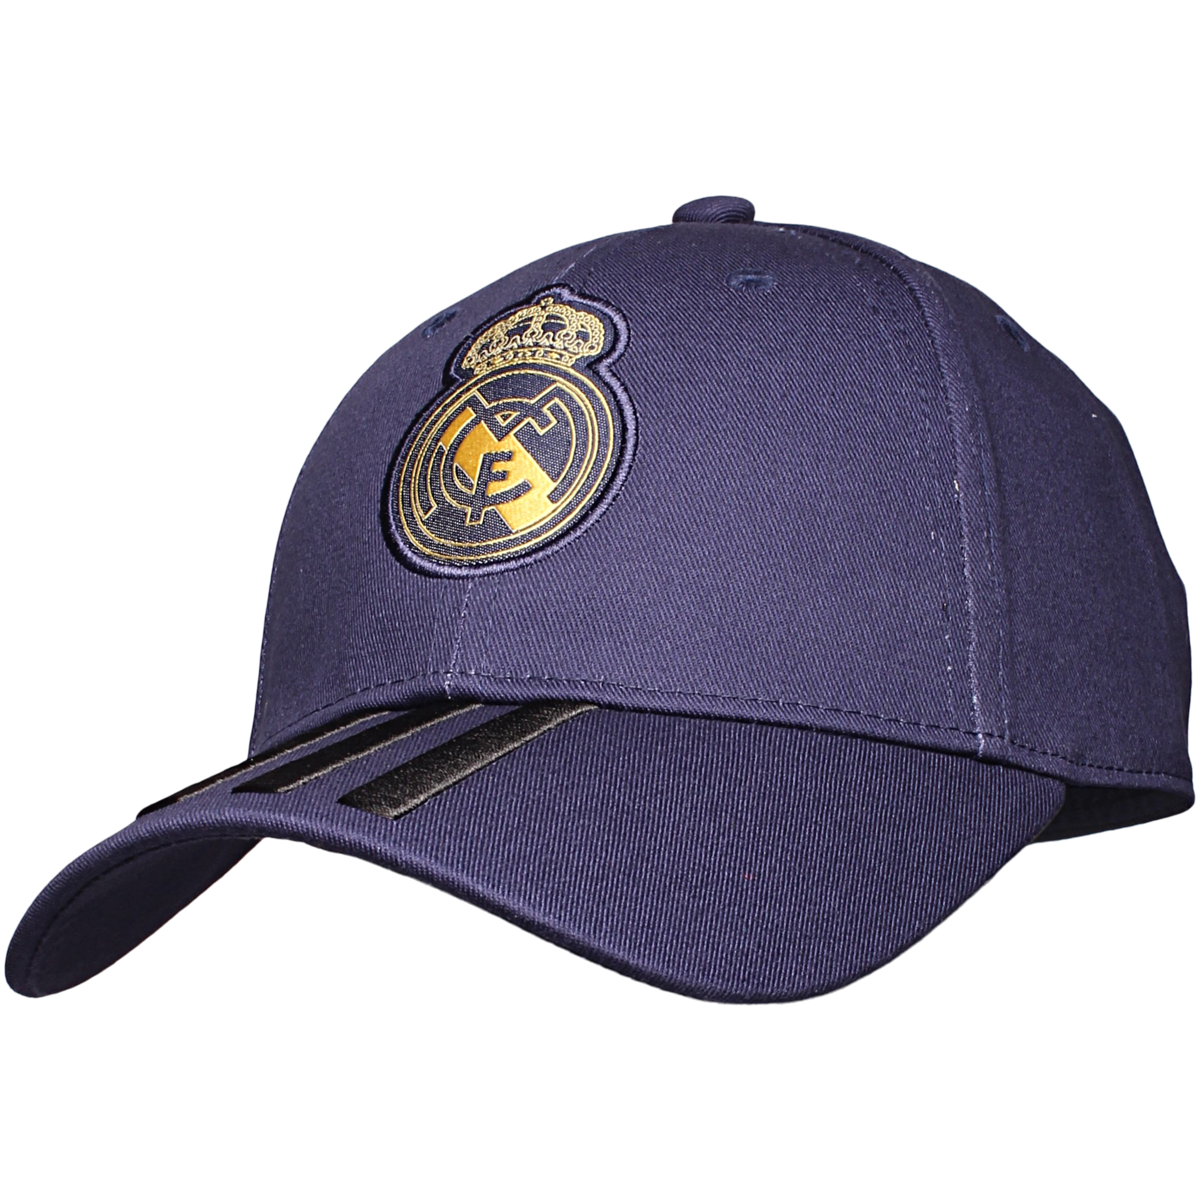 adidas - Real Madrid Cap 2019/20 - Navy